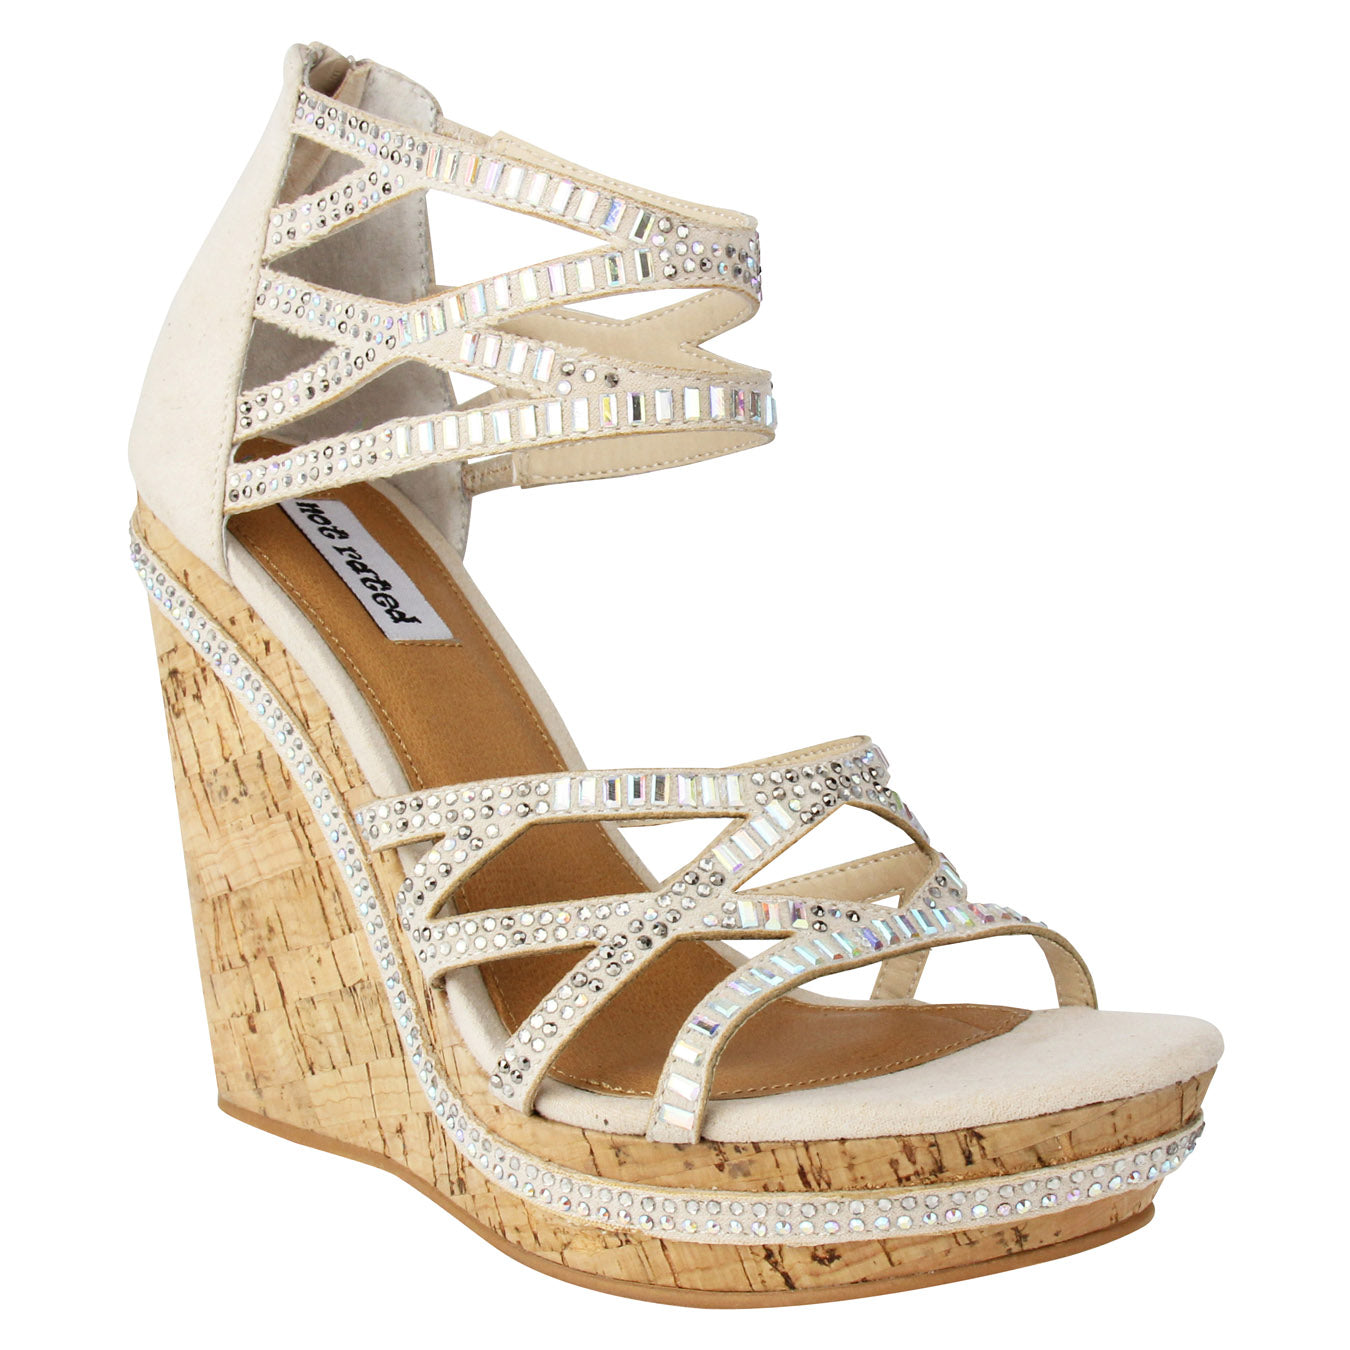 CORAL SEA - NUDE Wedge